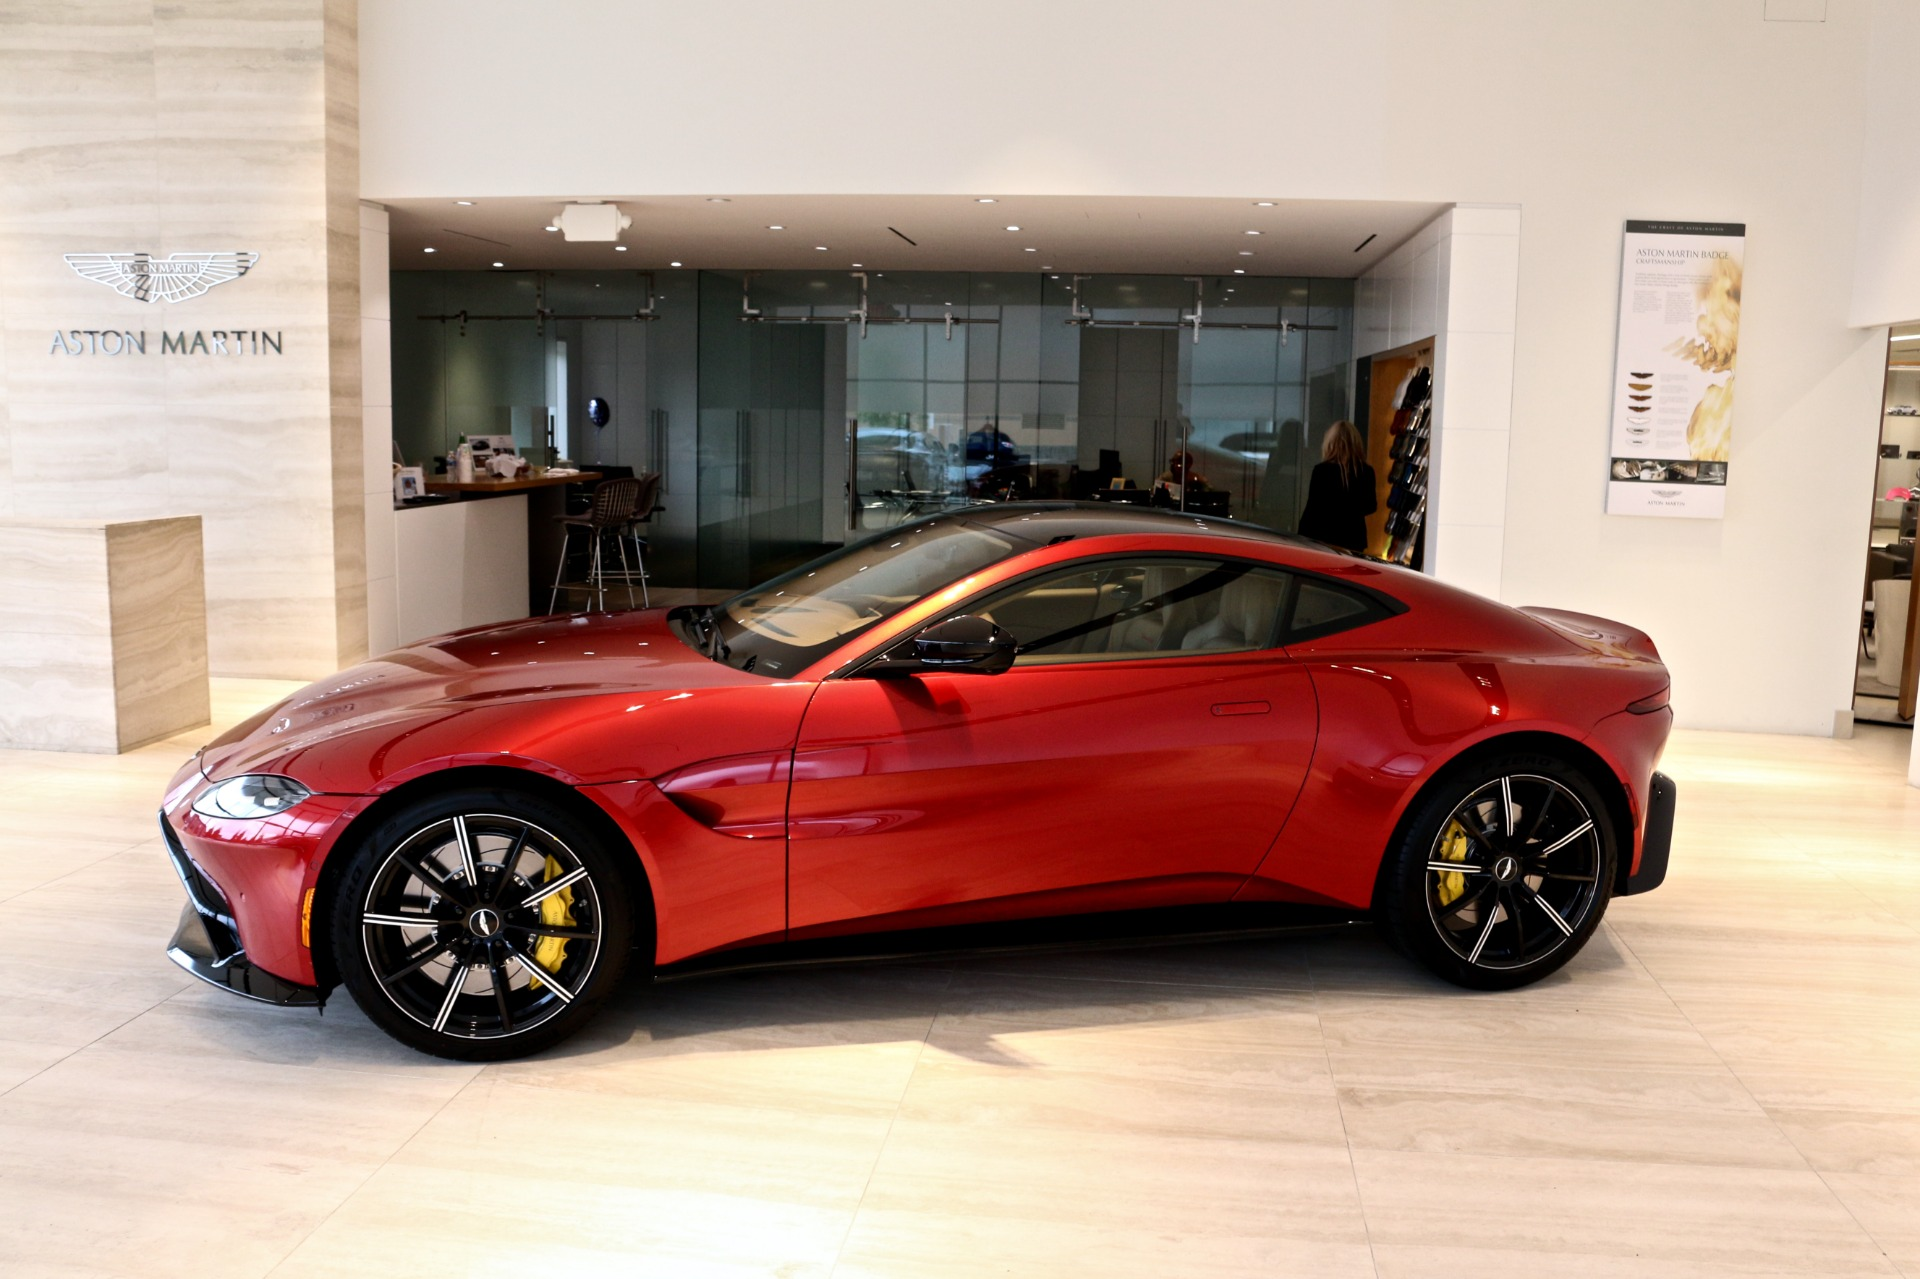 2019 aston martin vantage stock 9nn00128 for sale near vienna va va aston martin dealer. Black Bedroom Furniture Sets. Home Design Ideas